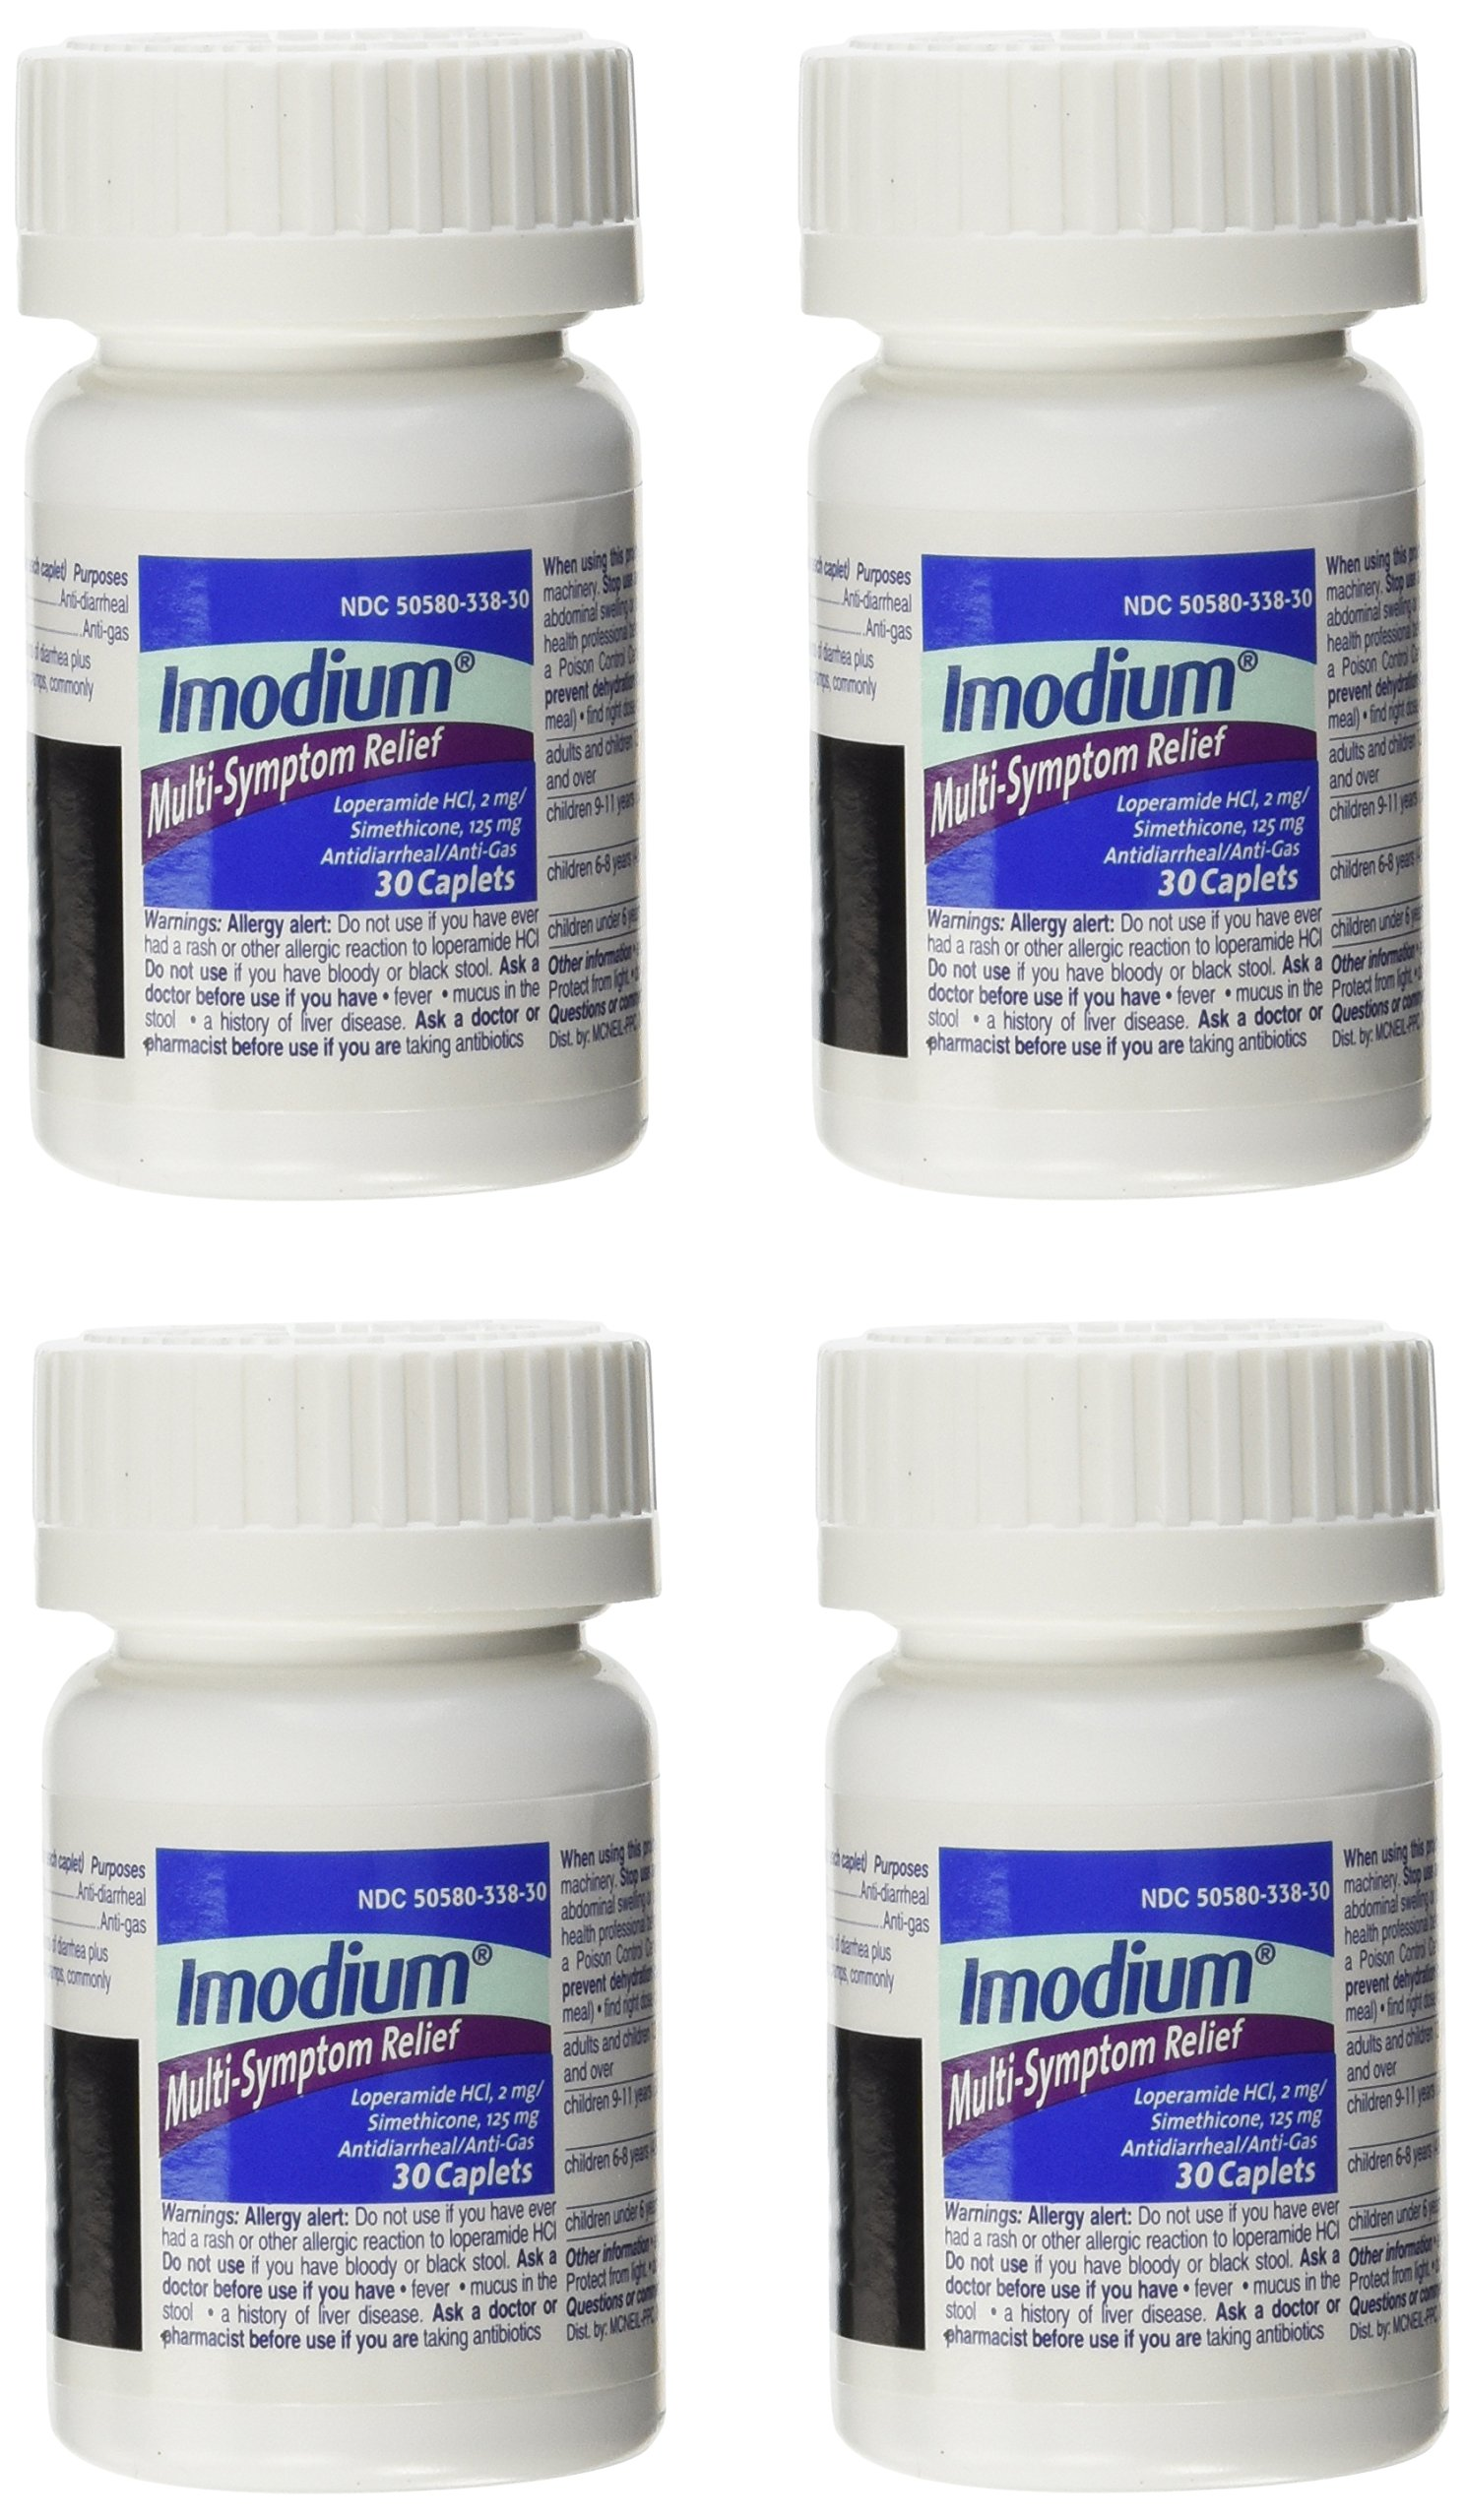 Imodium Multi-Symptom Relief - 4 Pack (30 count each), Total = 120 Count by Imodium